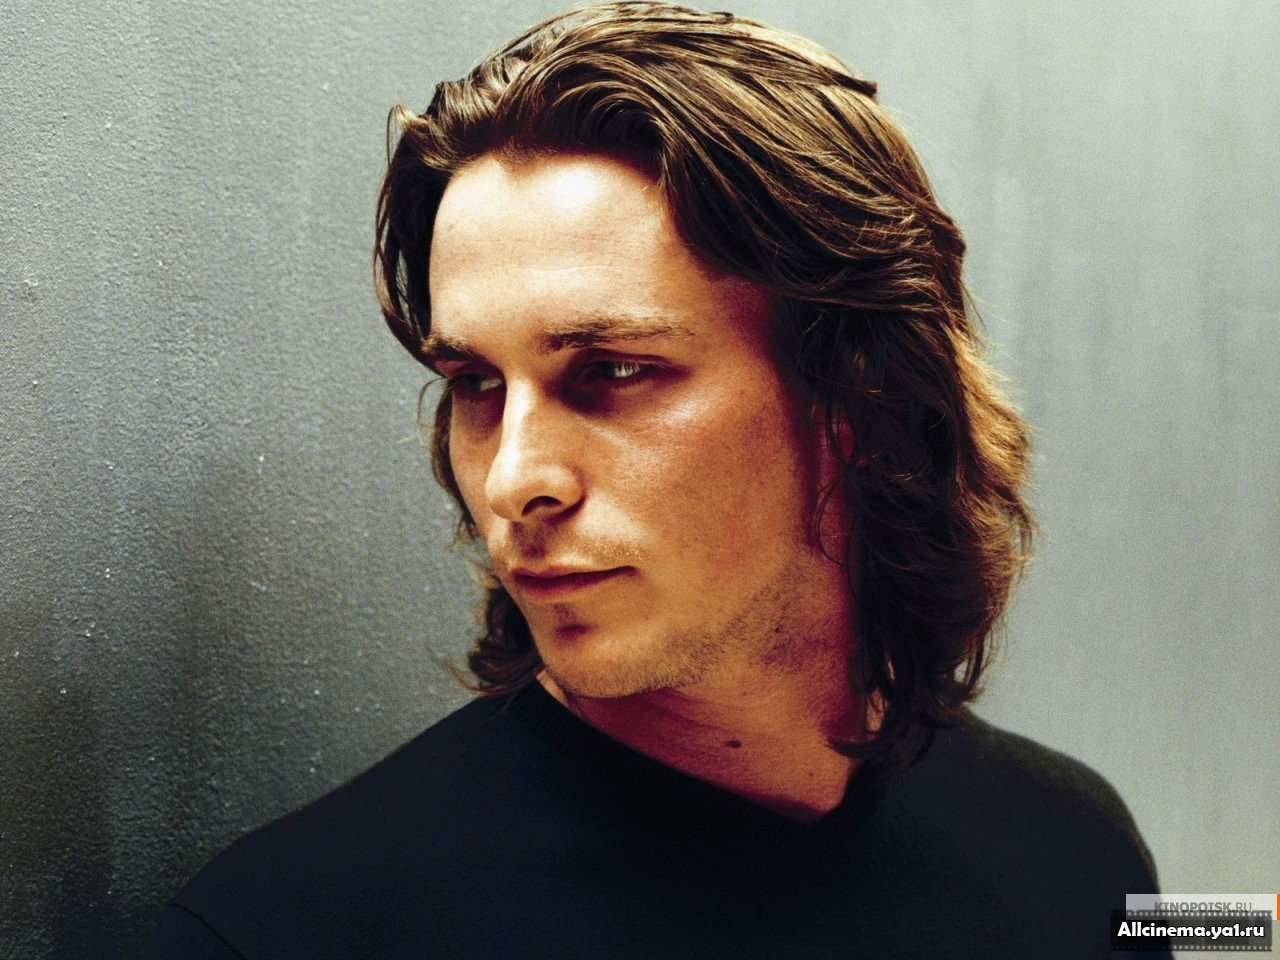 Christian Bale: Christian Bale Bio, Career, Quotes, Filmography & Pictures